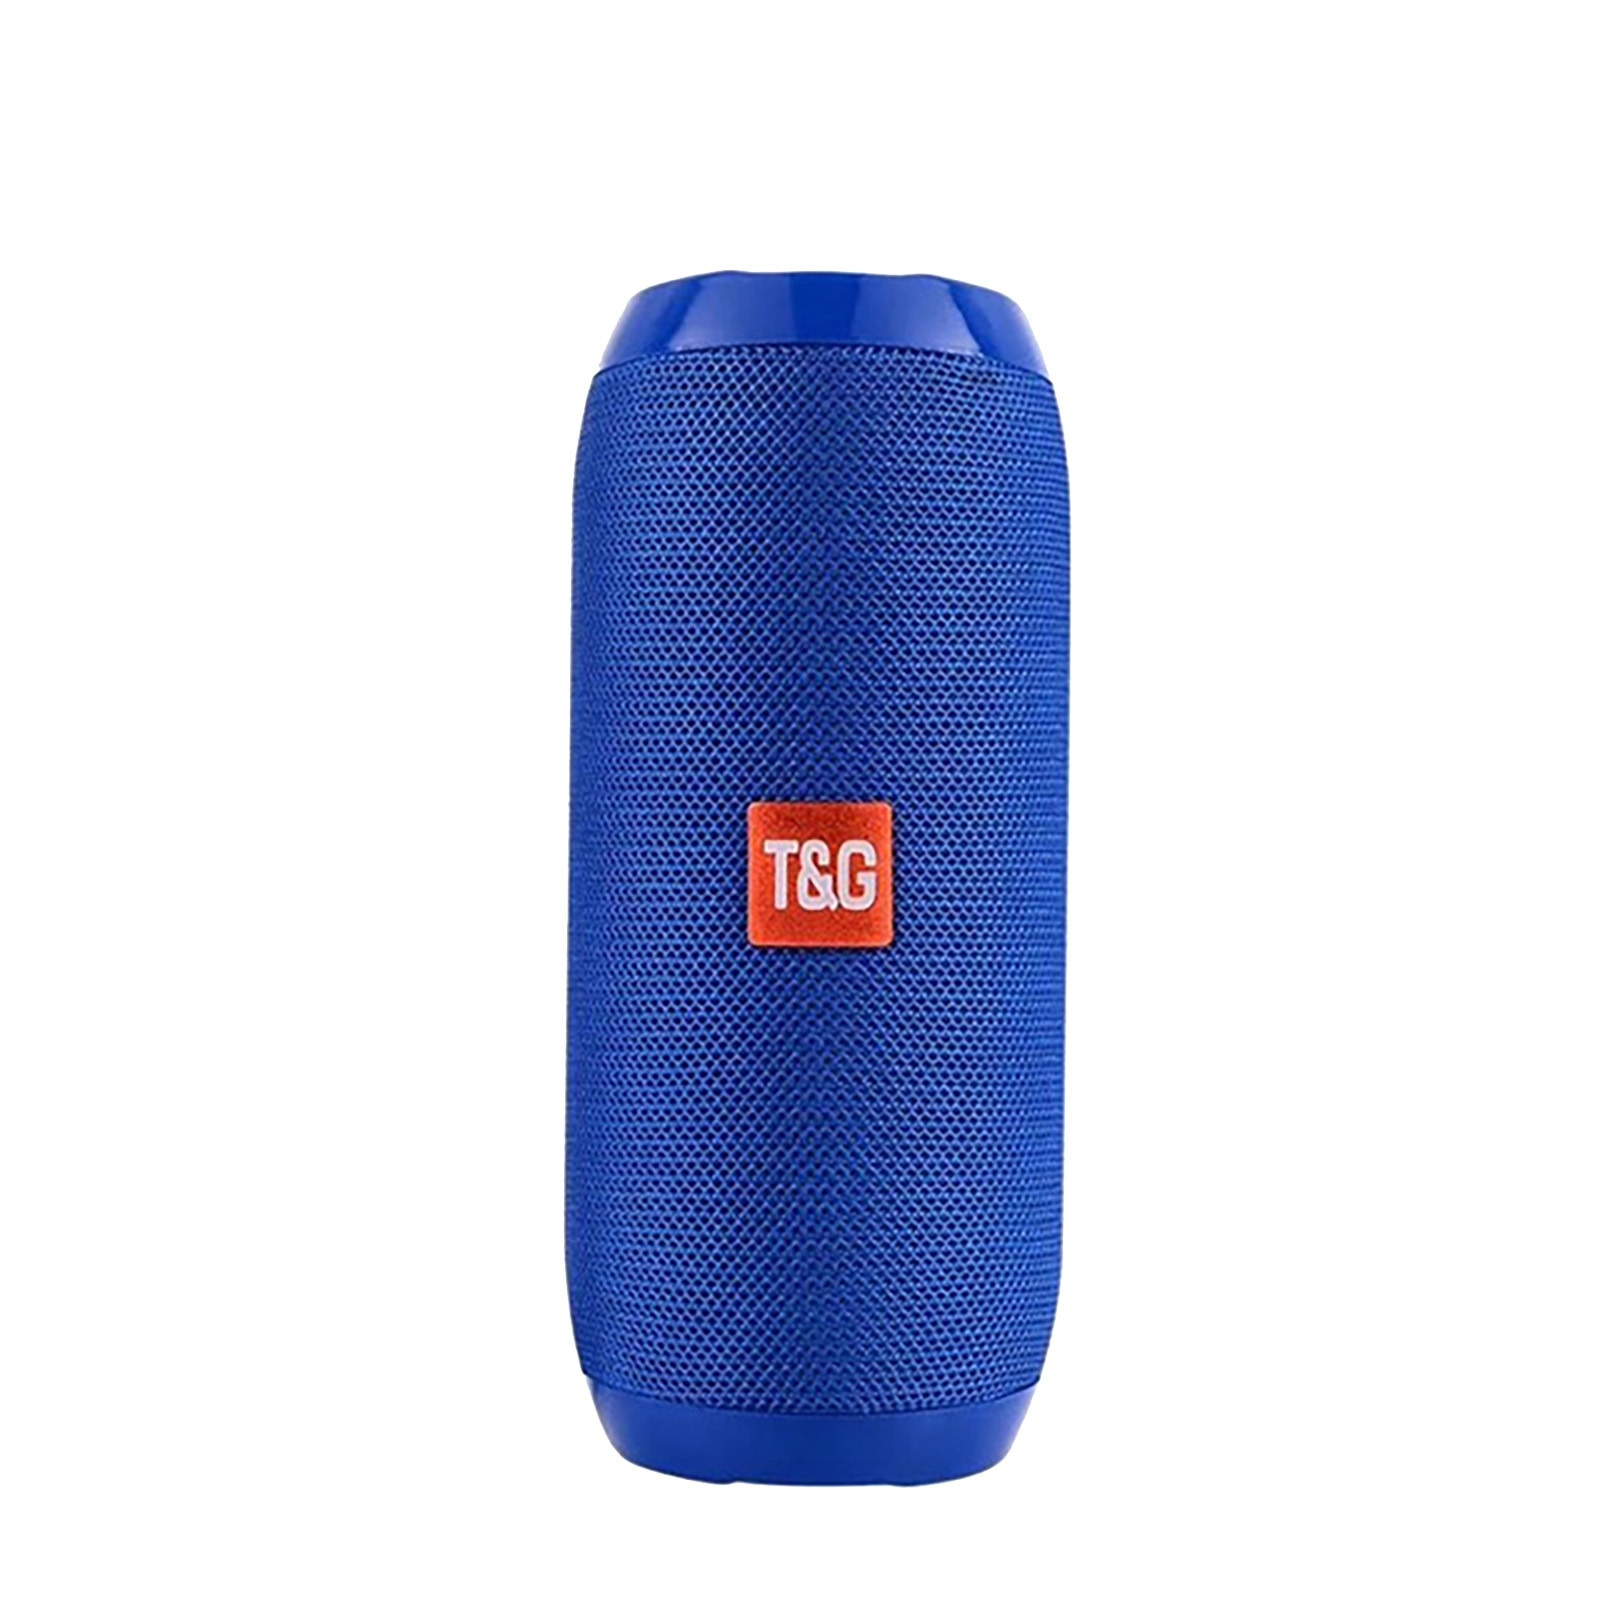 Hb1745552eded45398946c262c363e09fF - Portable Bluetooth Speaker Wireless Bass Column Waterproof Outdoor USB Speakers Support AUX TF Subwoofer Loudspeaker